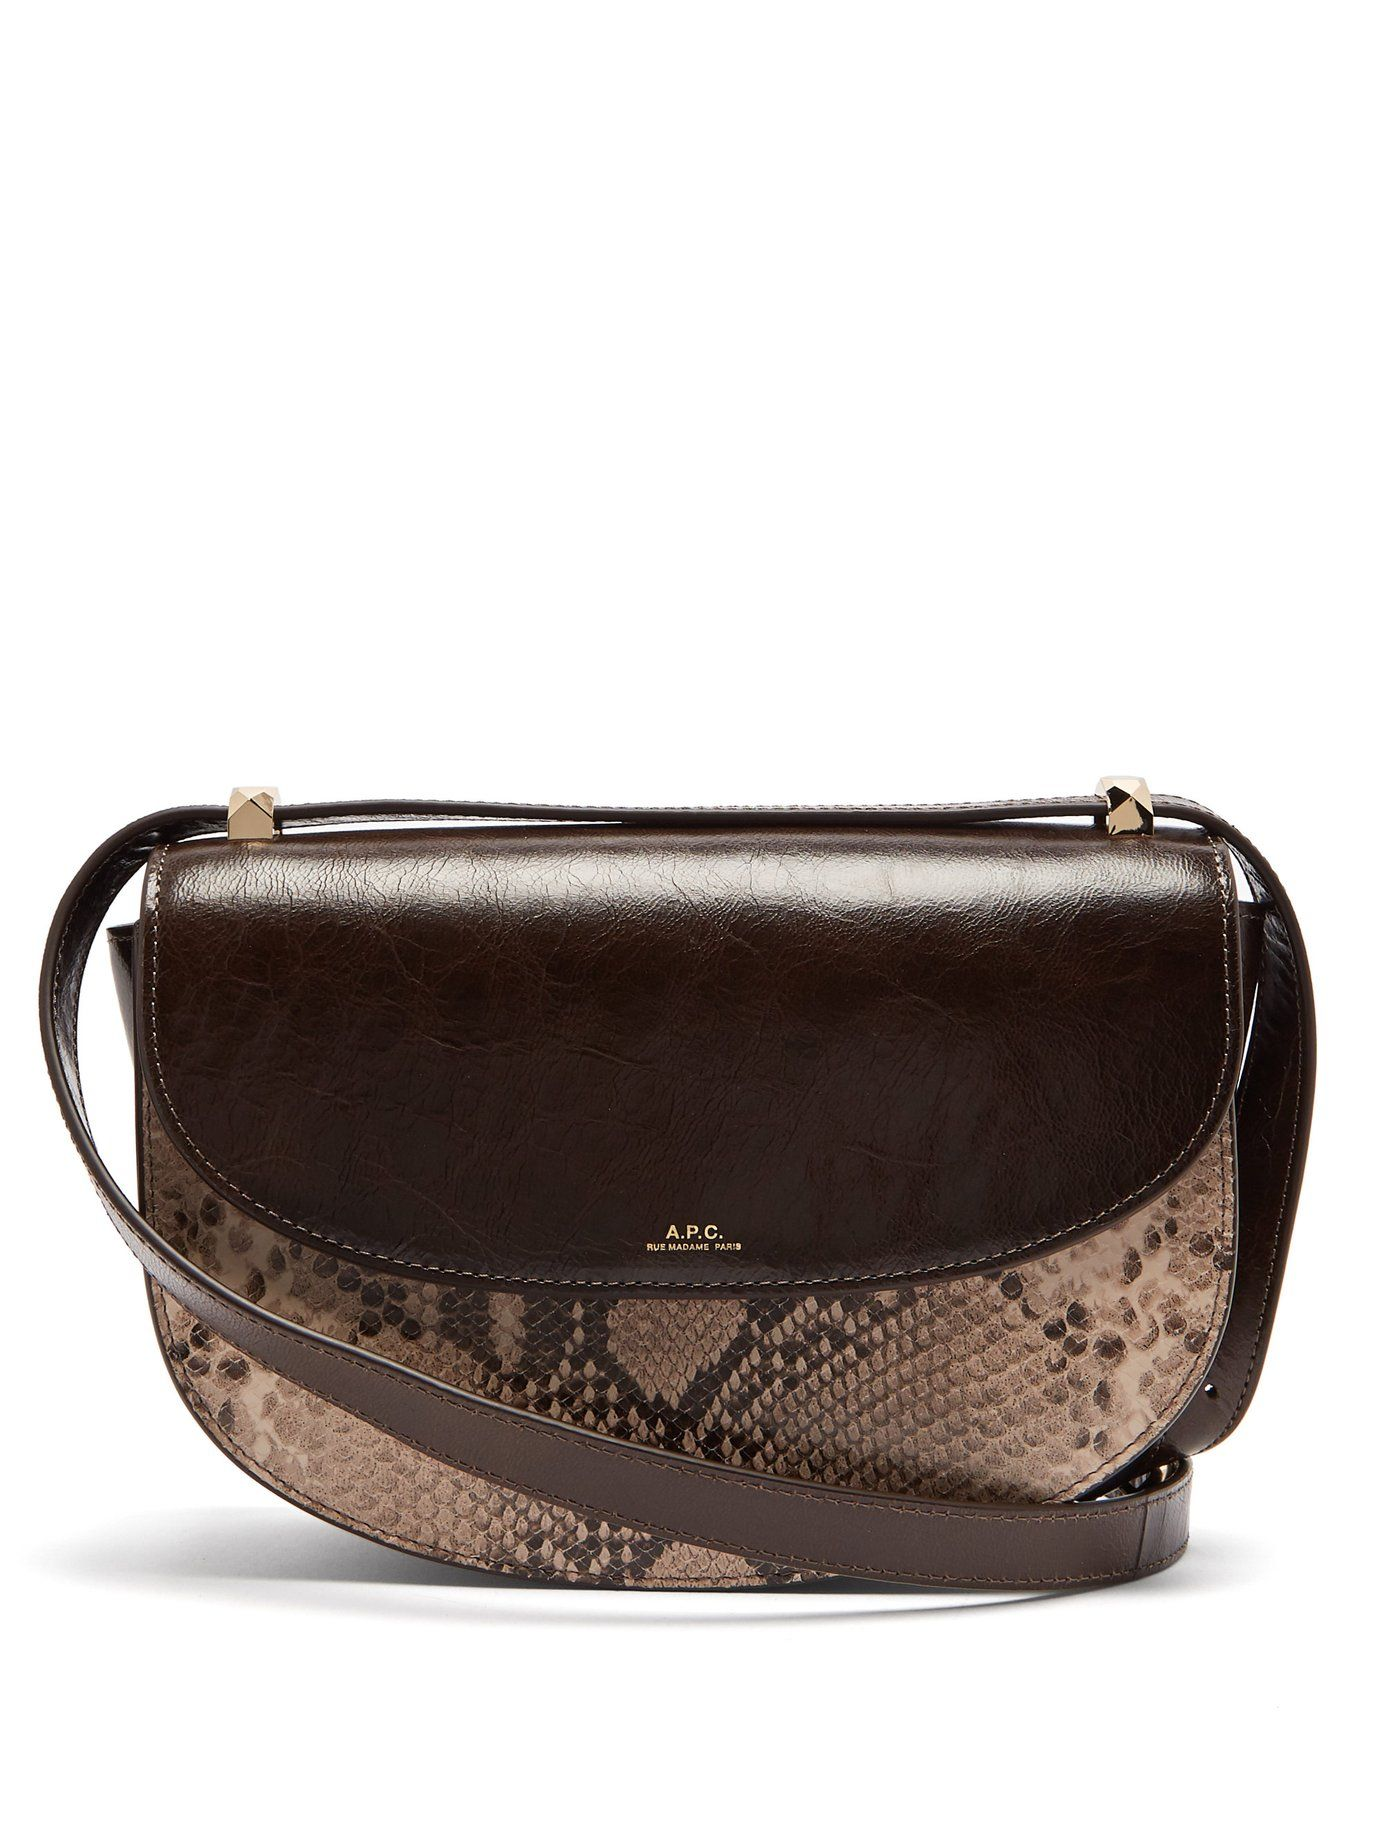 b6b658fc6ed8 Genève snake-print leather cross-body bag